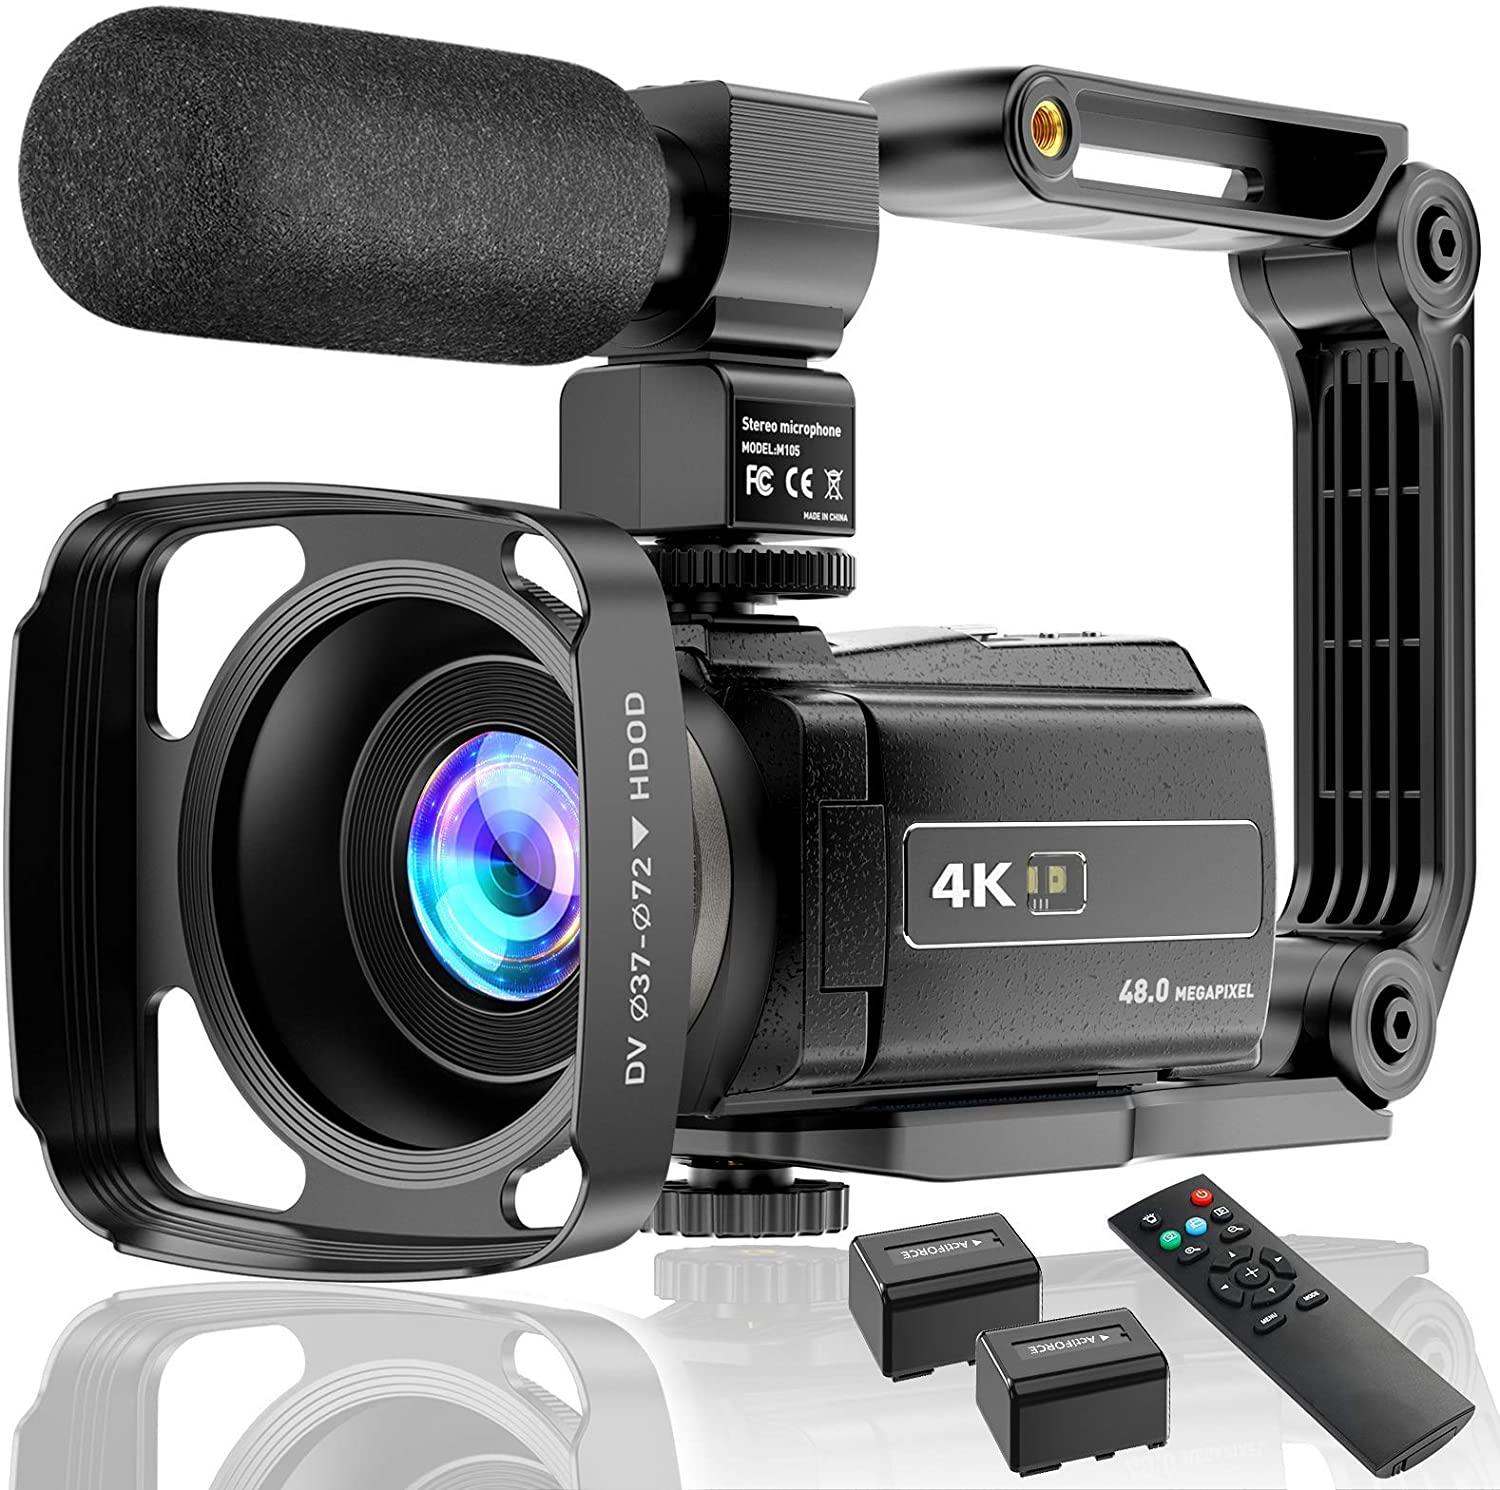 Video Camera 4K Camcorder Ultra Super beauty product restock quality top! Vlogging HD YouT for 48MP Popularity